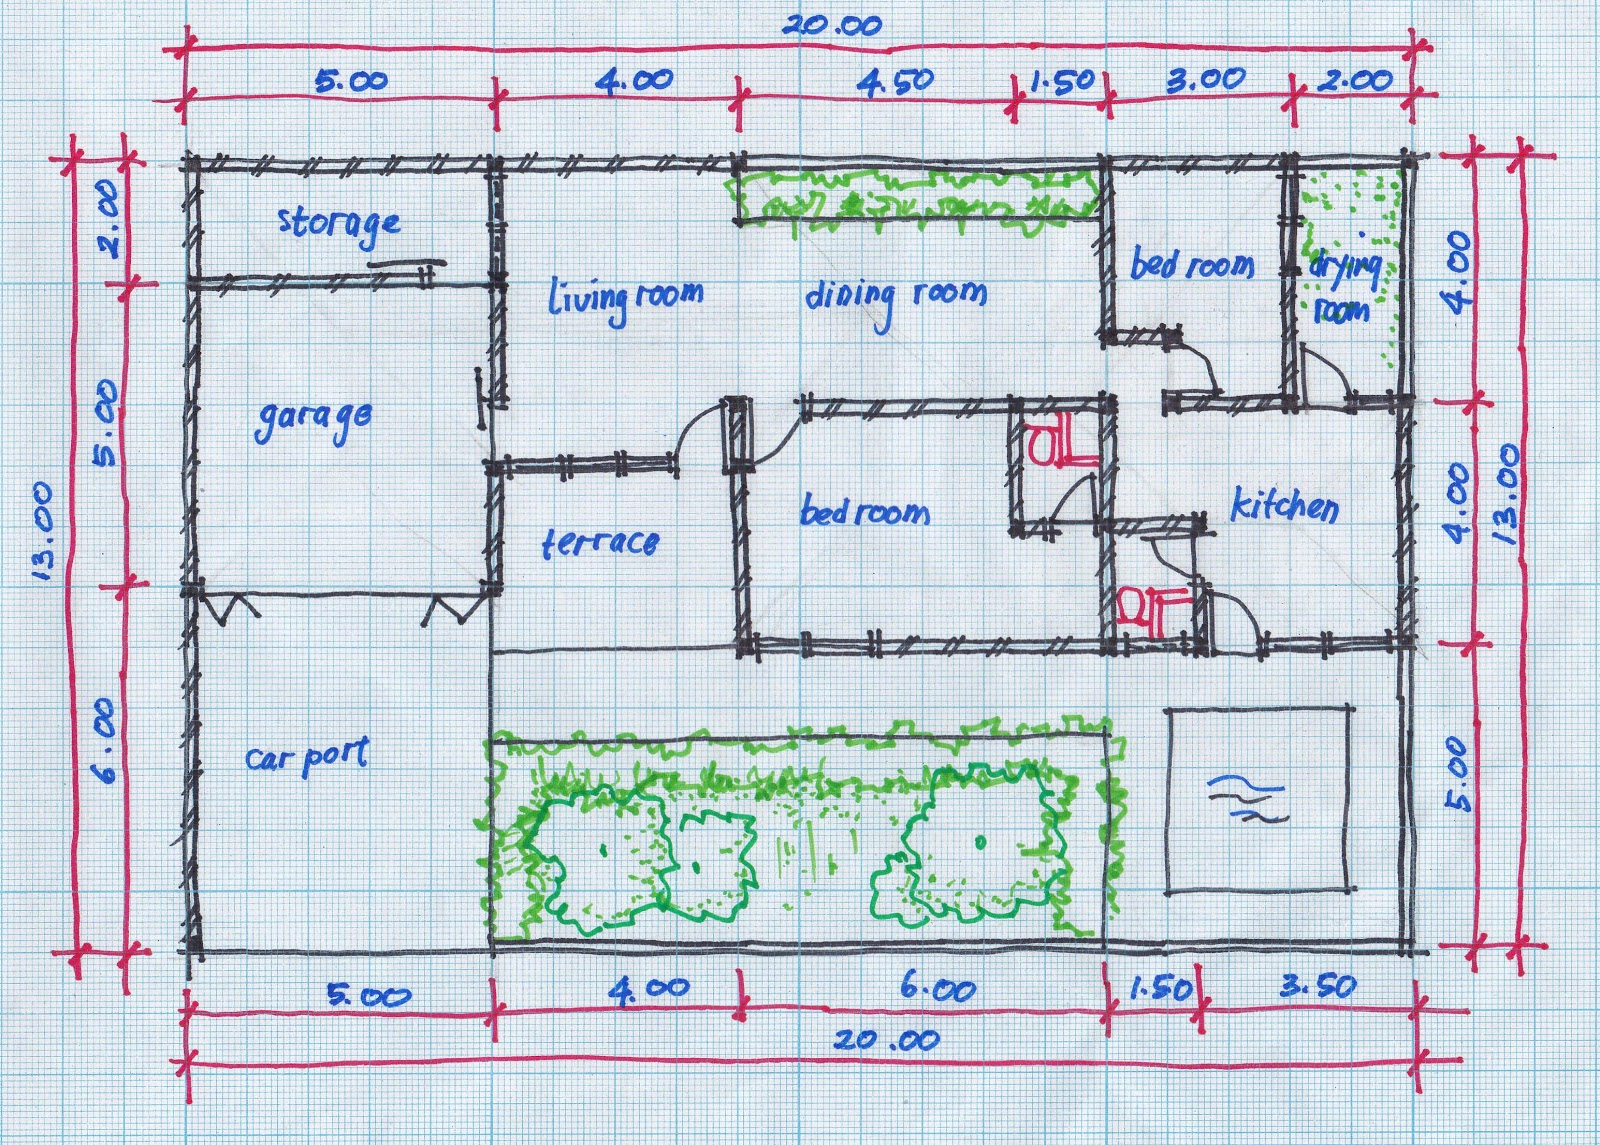 little house plans 2 little house plans 3 little house plans 4 little on little house